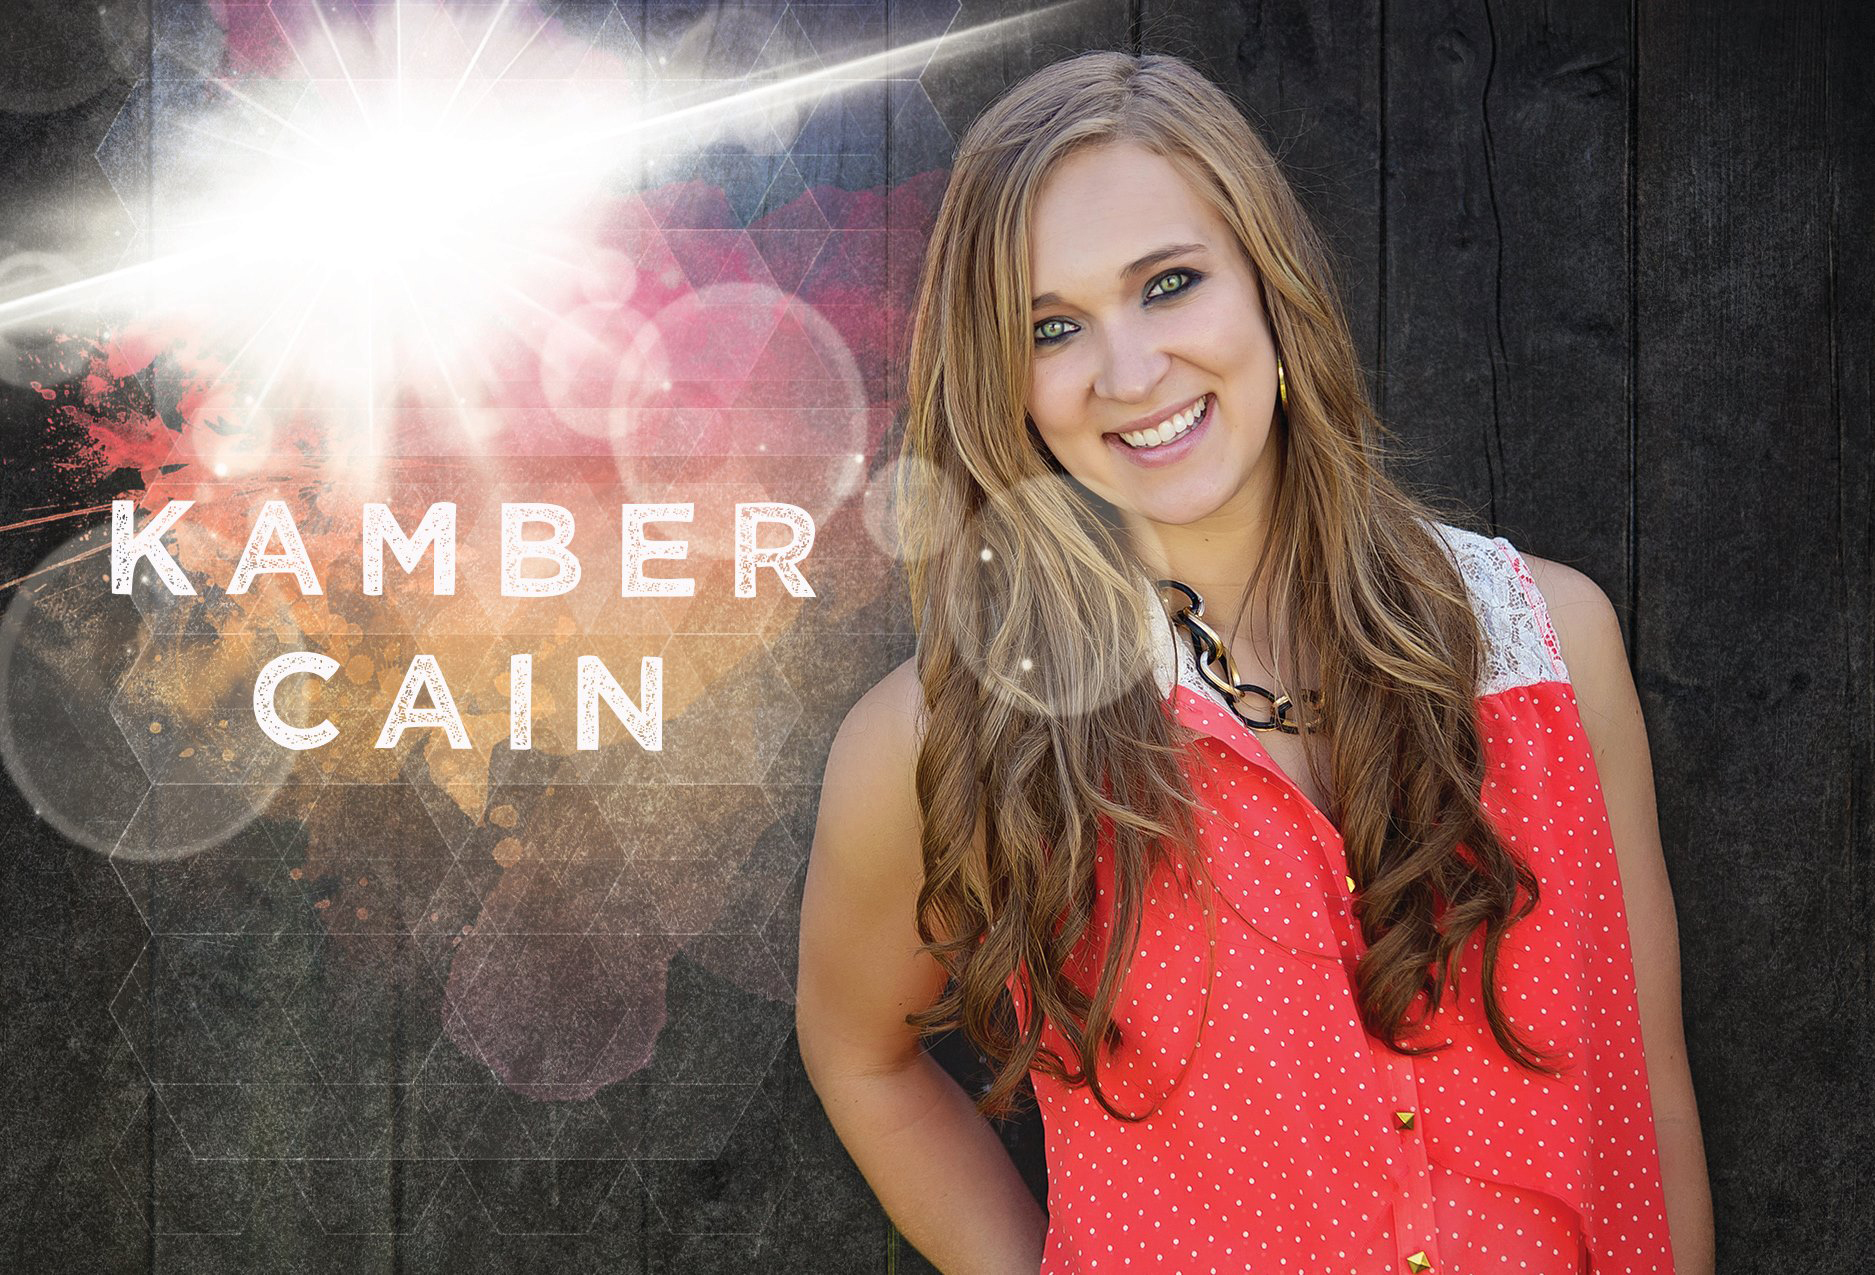 Kamber Cain – with Name